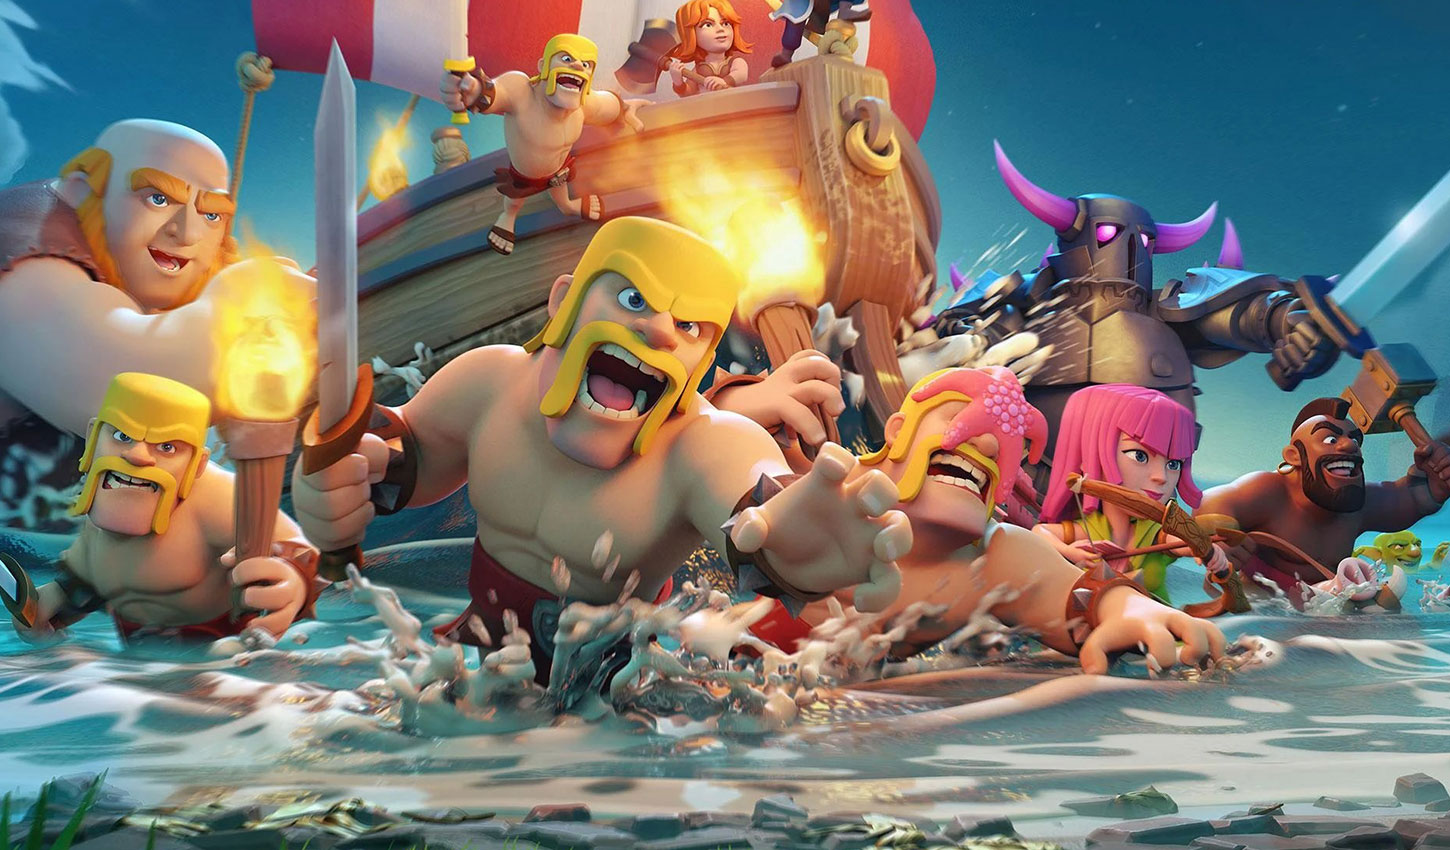 With a daily intake of over $1 million per day, Clash of Clans proves it's still going strong